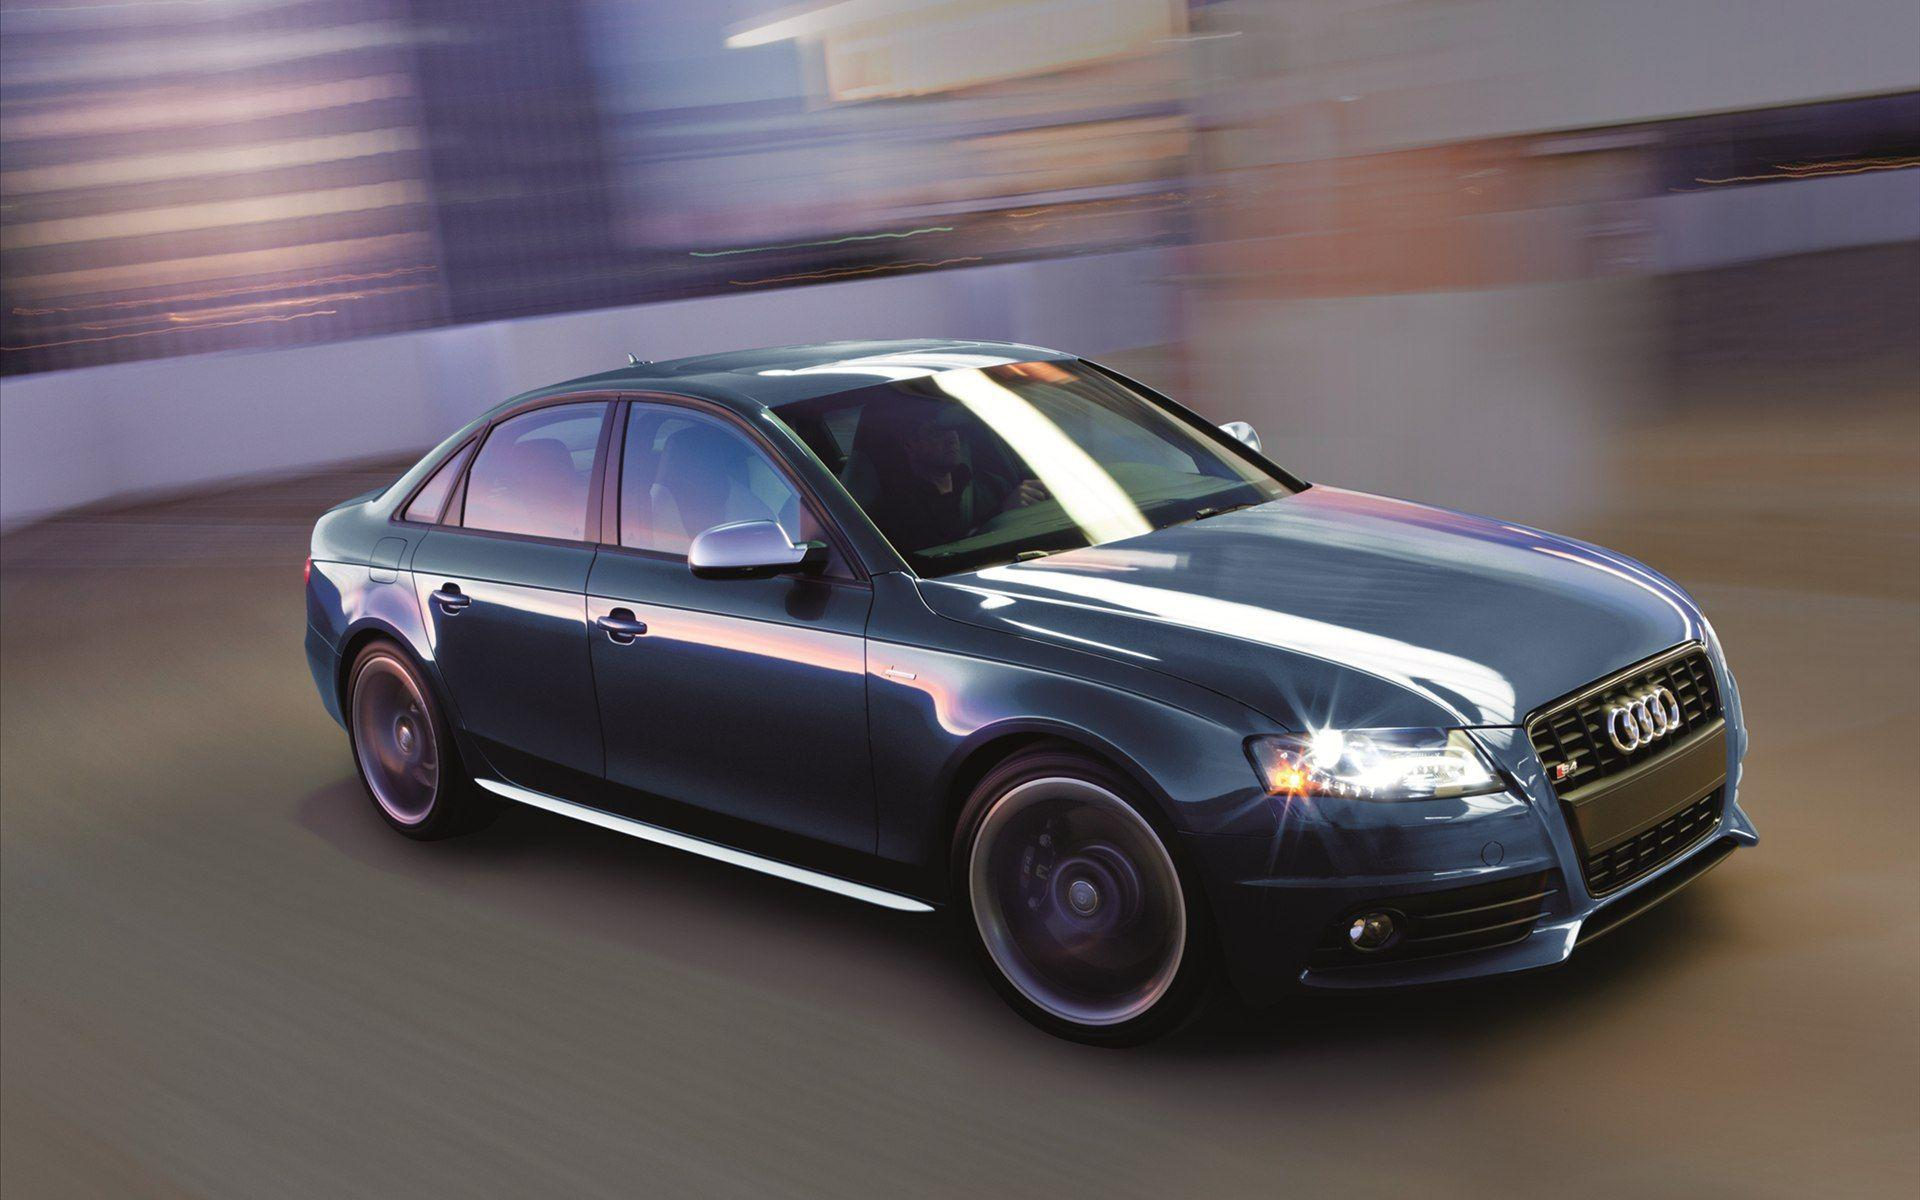 Audi S4 backgrounds Download Free